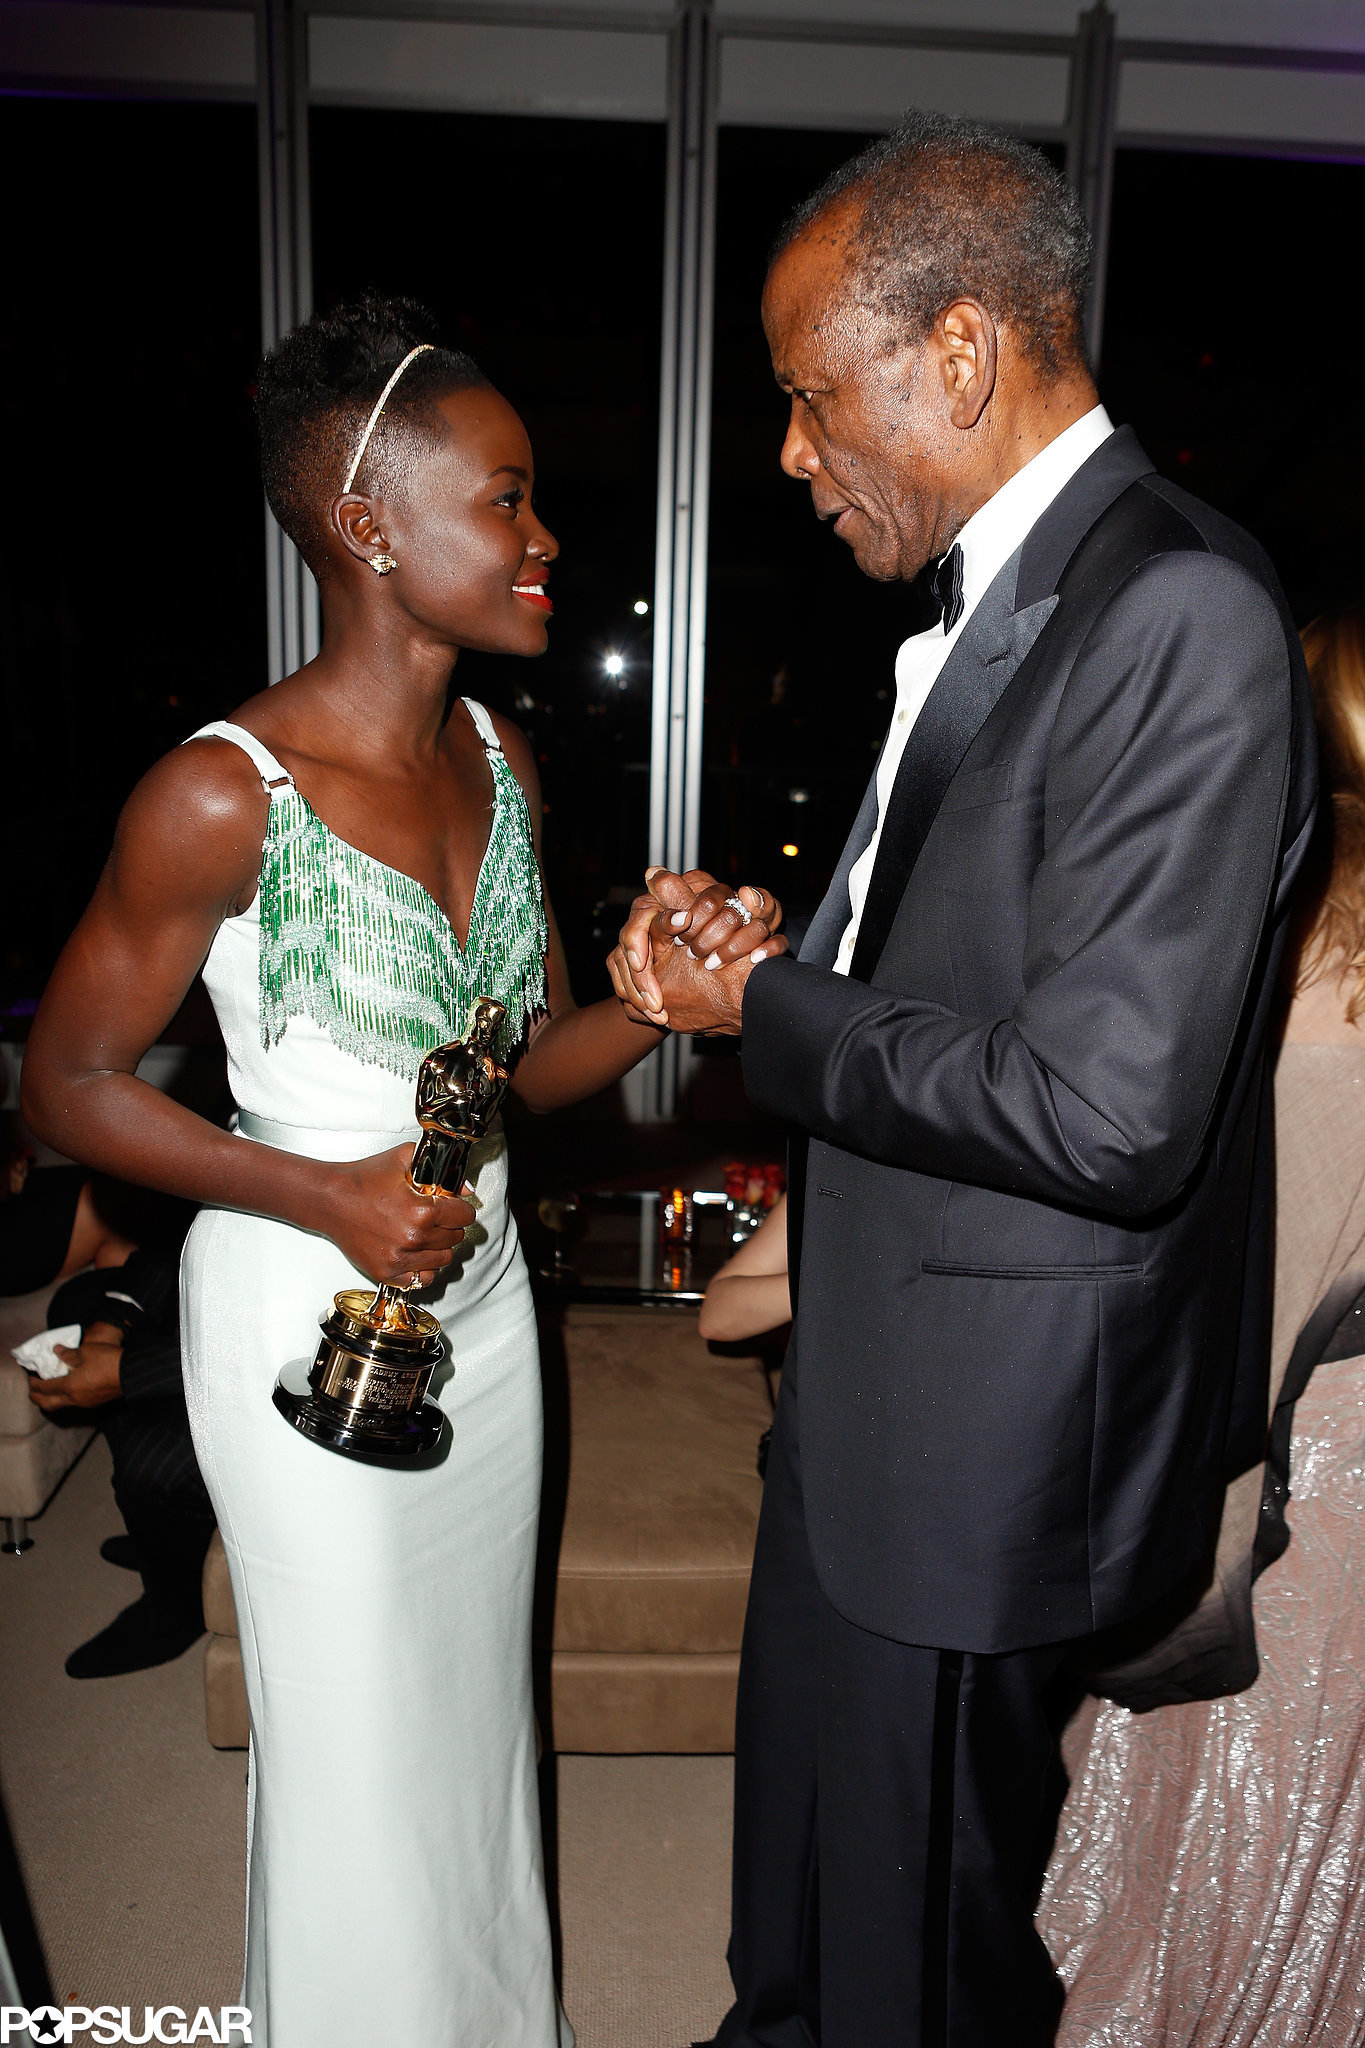 Lupita Nyong'o got a sweet handshake from legendary actor Sidney Poitier.